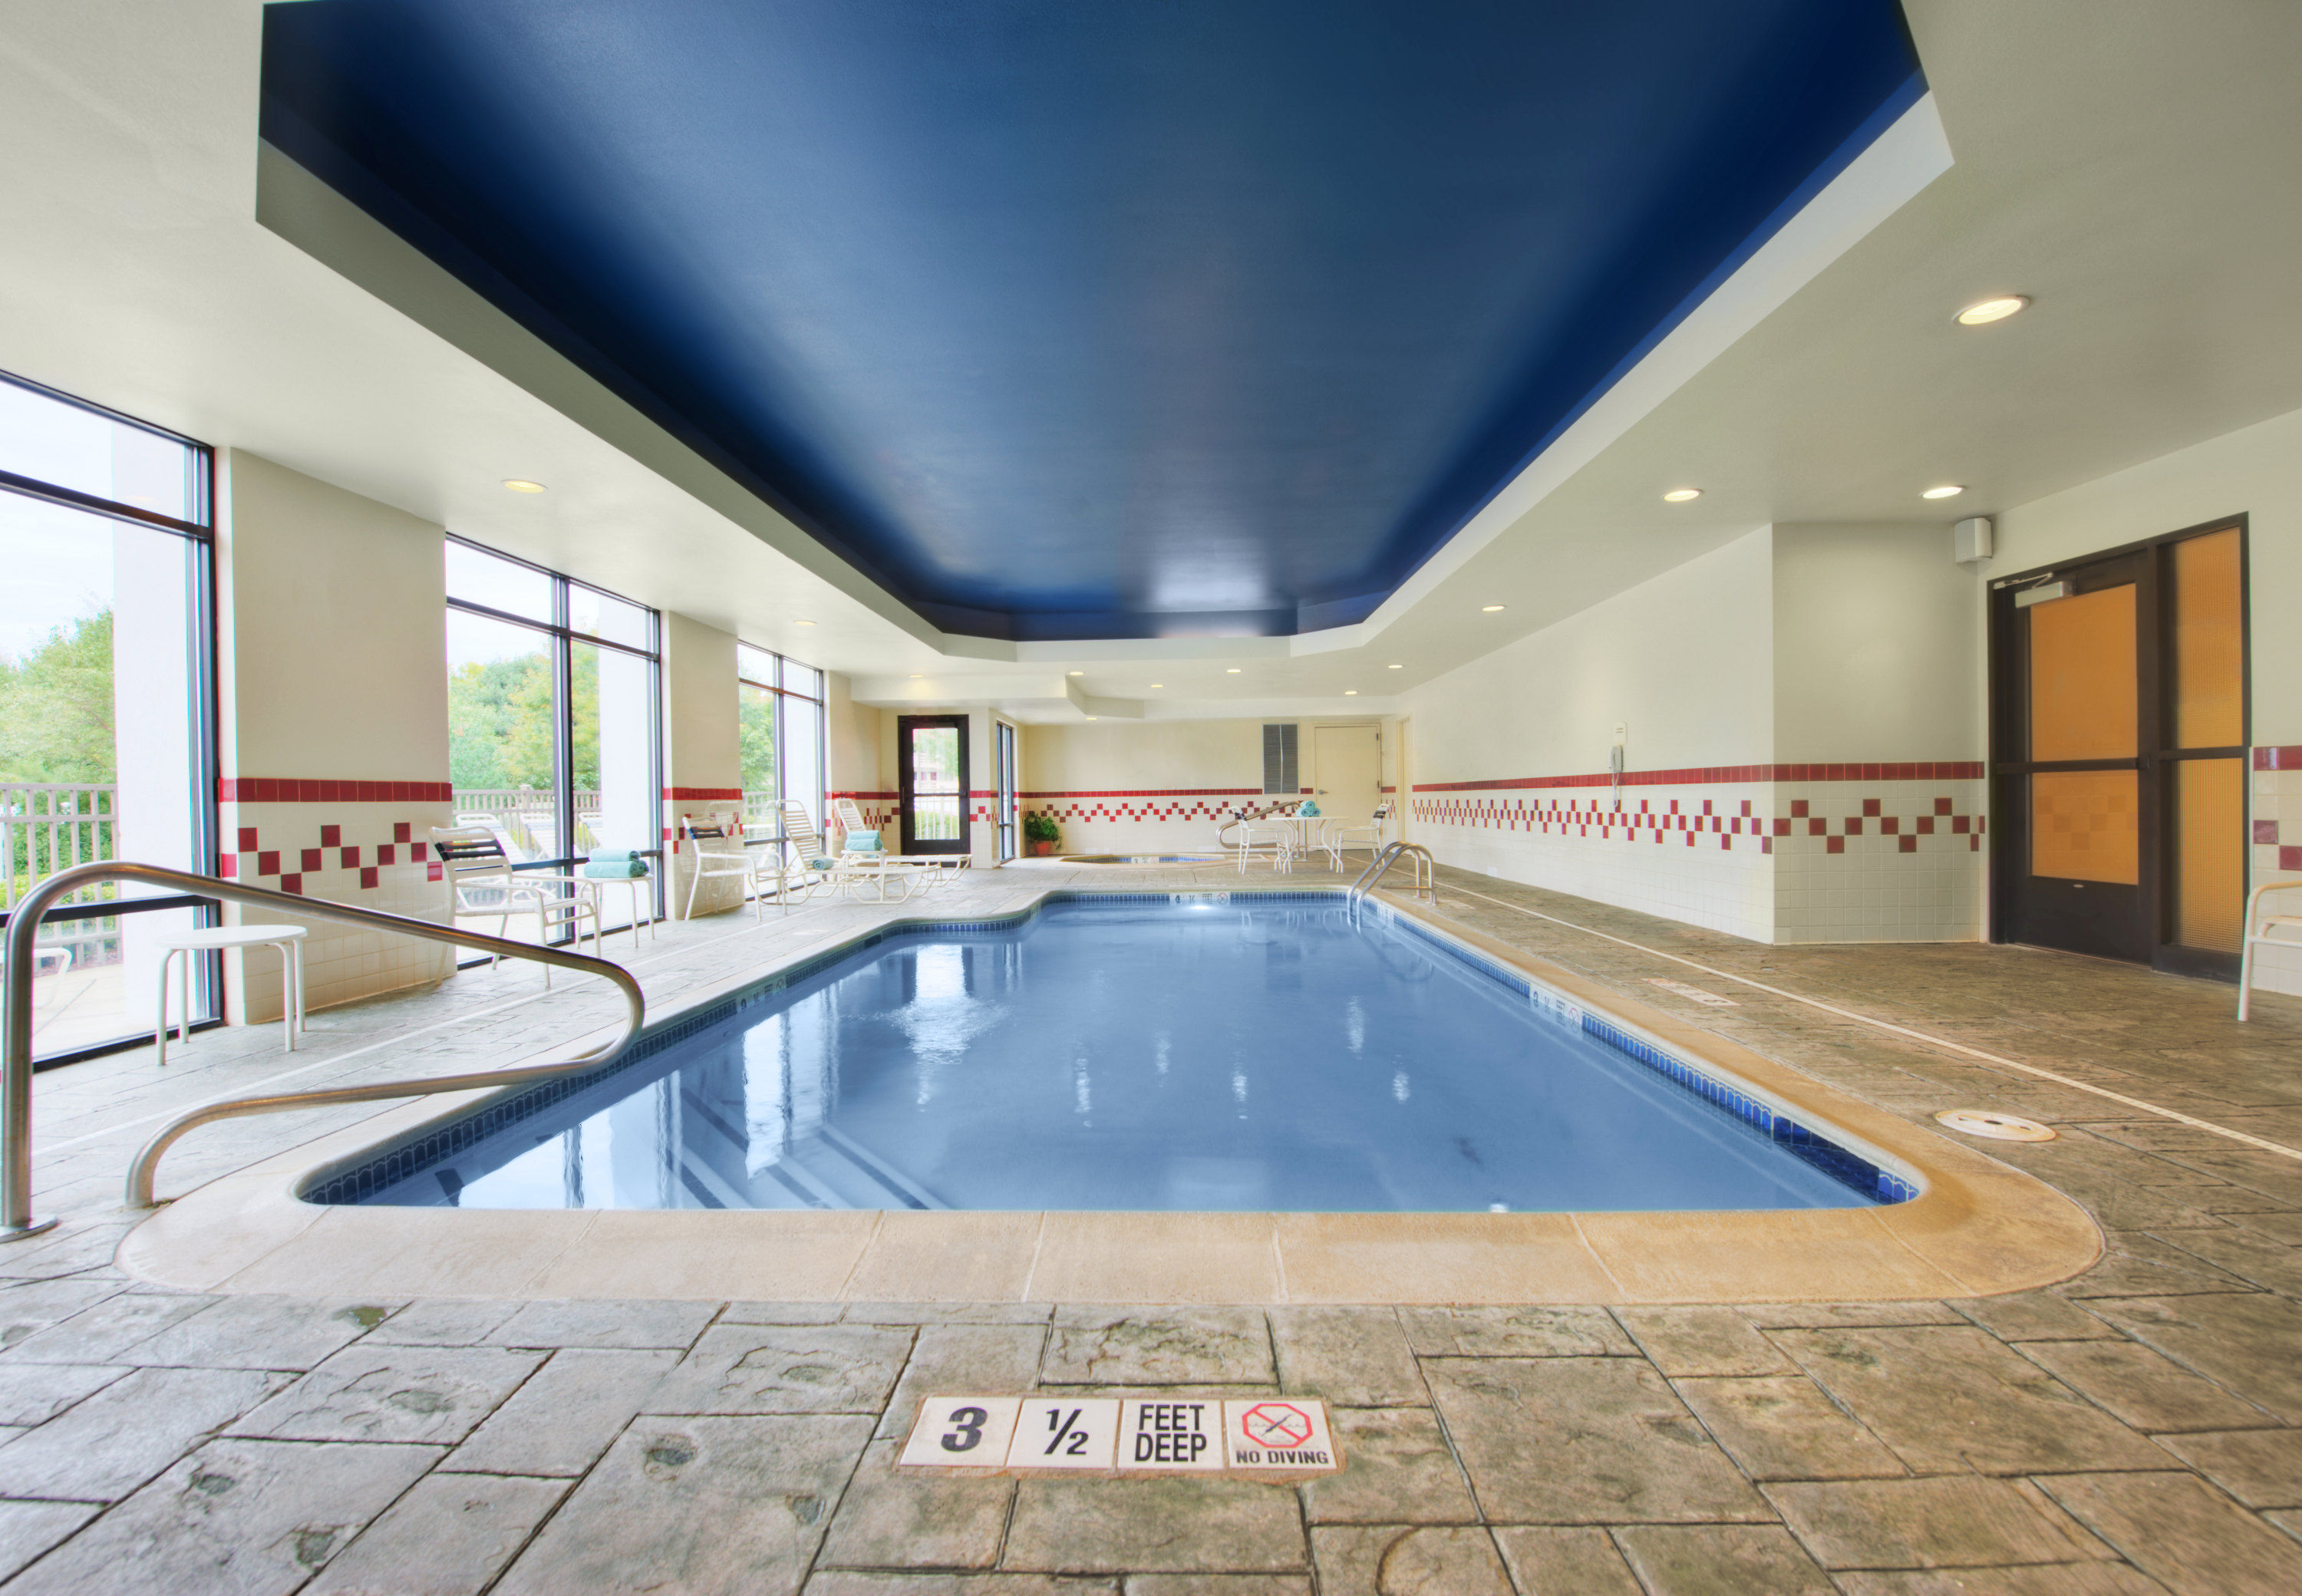 SpringHill Suites by Marriott Milford image 2